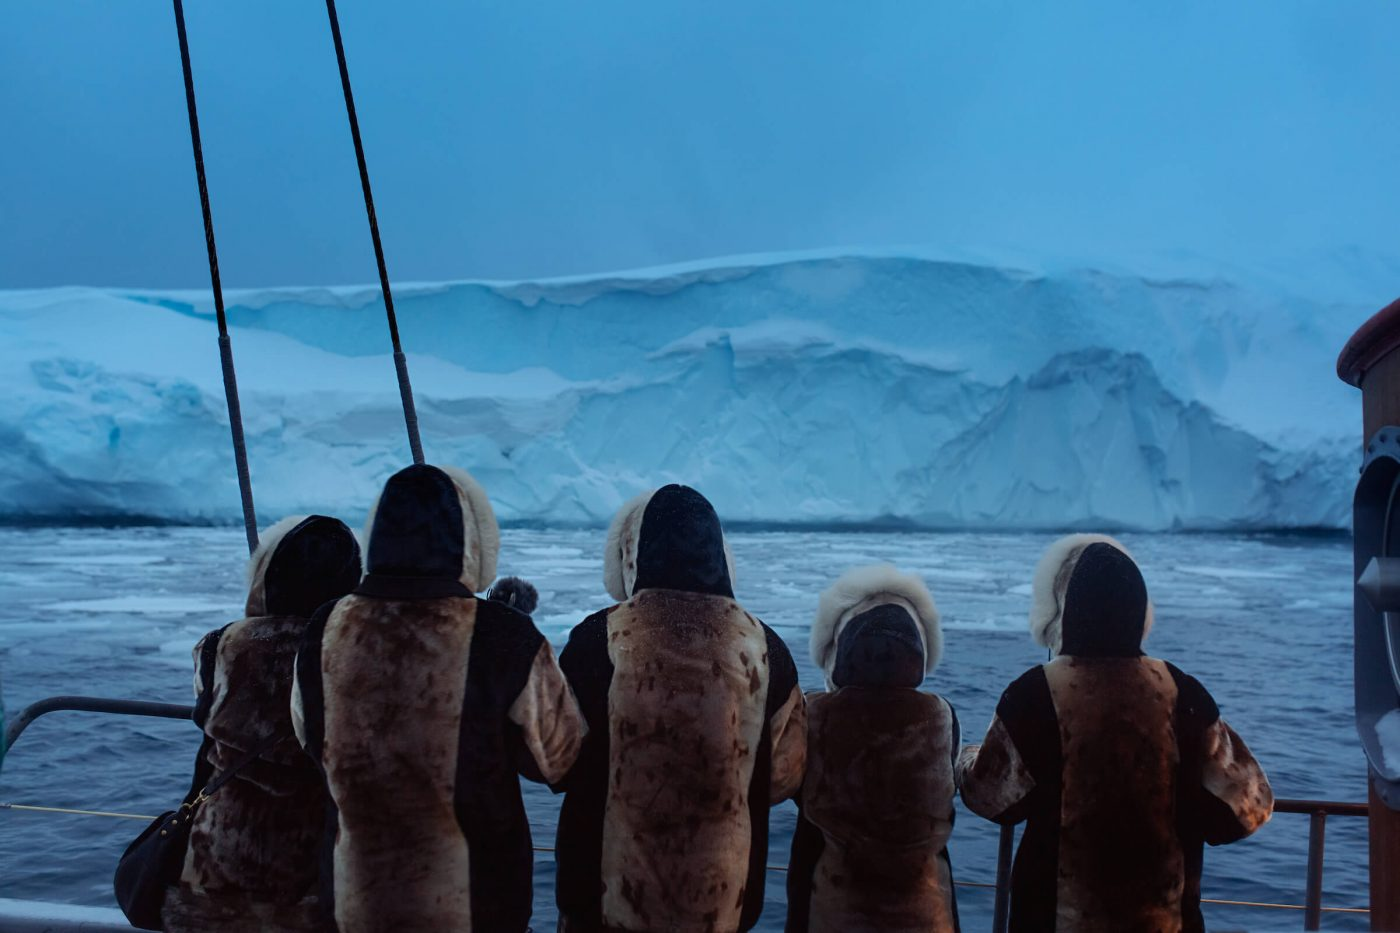 A group of seal skin dressed tourists enjoying the Ilulissat icefjord during blue hour in Greenland. By Rebecca Gustafsson